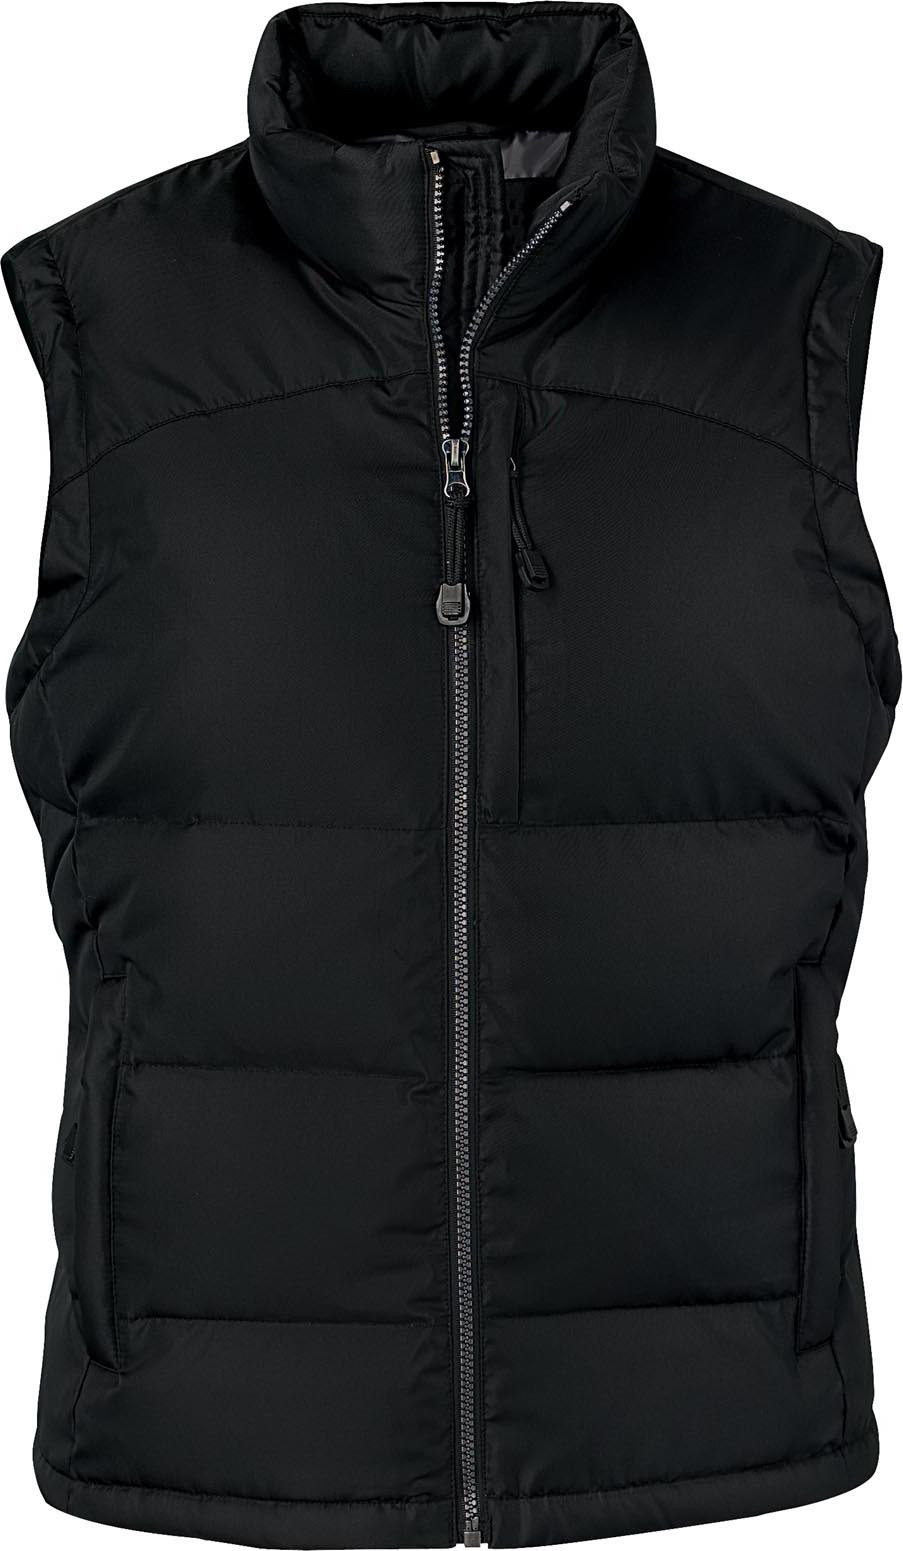 Ash City UTK 1 Warm.Logik 78033 - Ladies' Down Vest